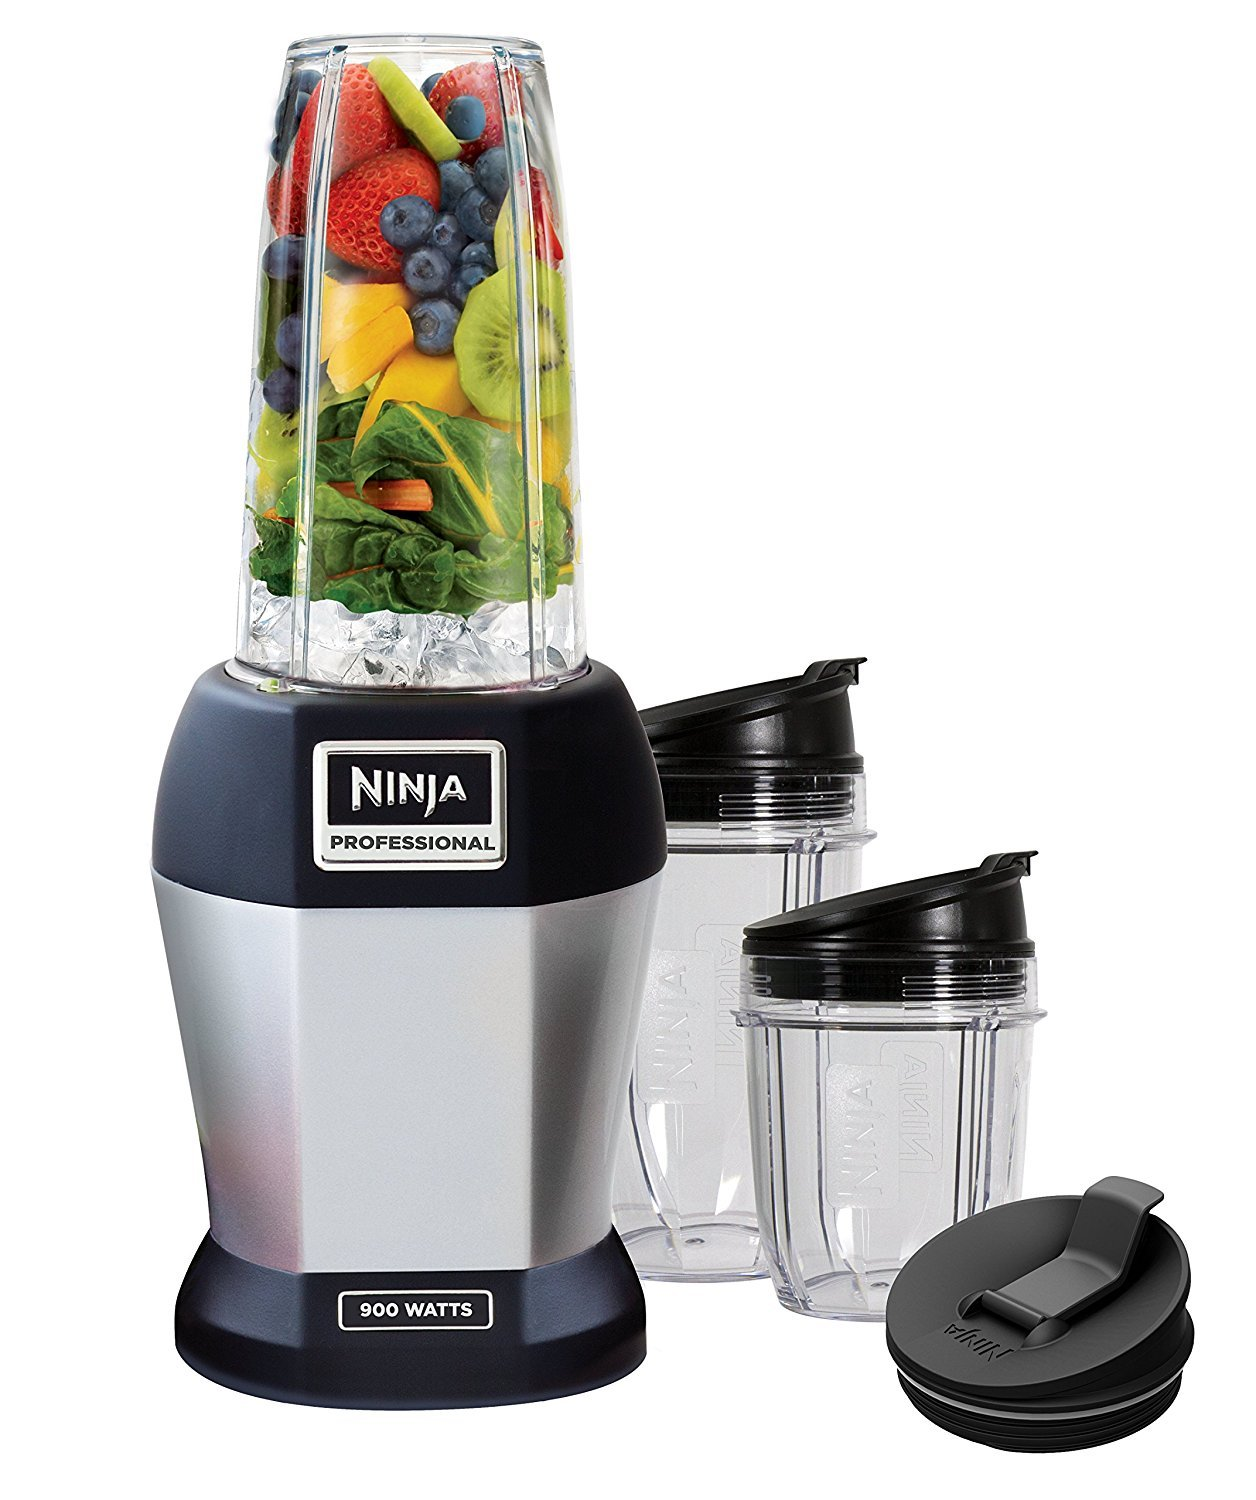 SharkNinja Pro Blenders, Silver/Black (Refurbished)